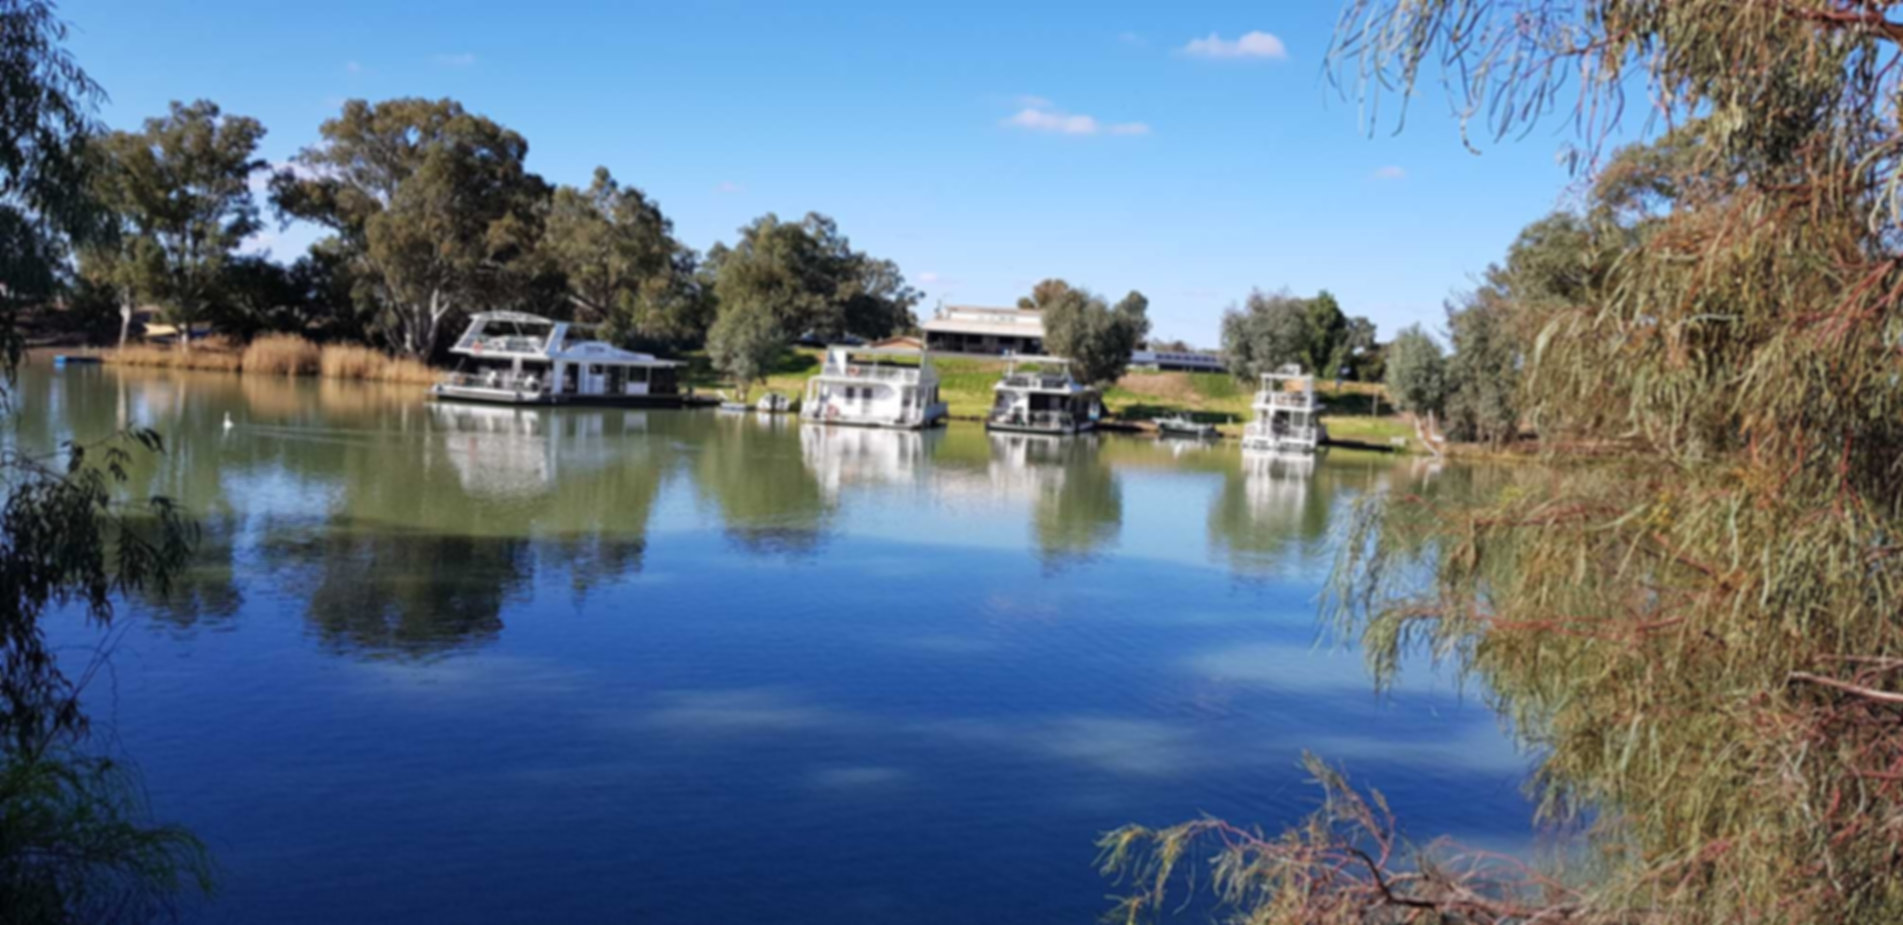 Murray Darling Houseboats private secure Marina on the Darling River